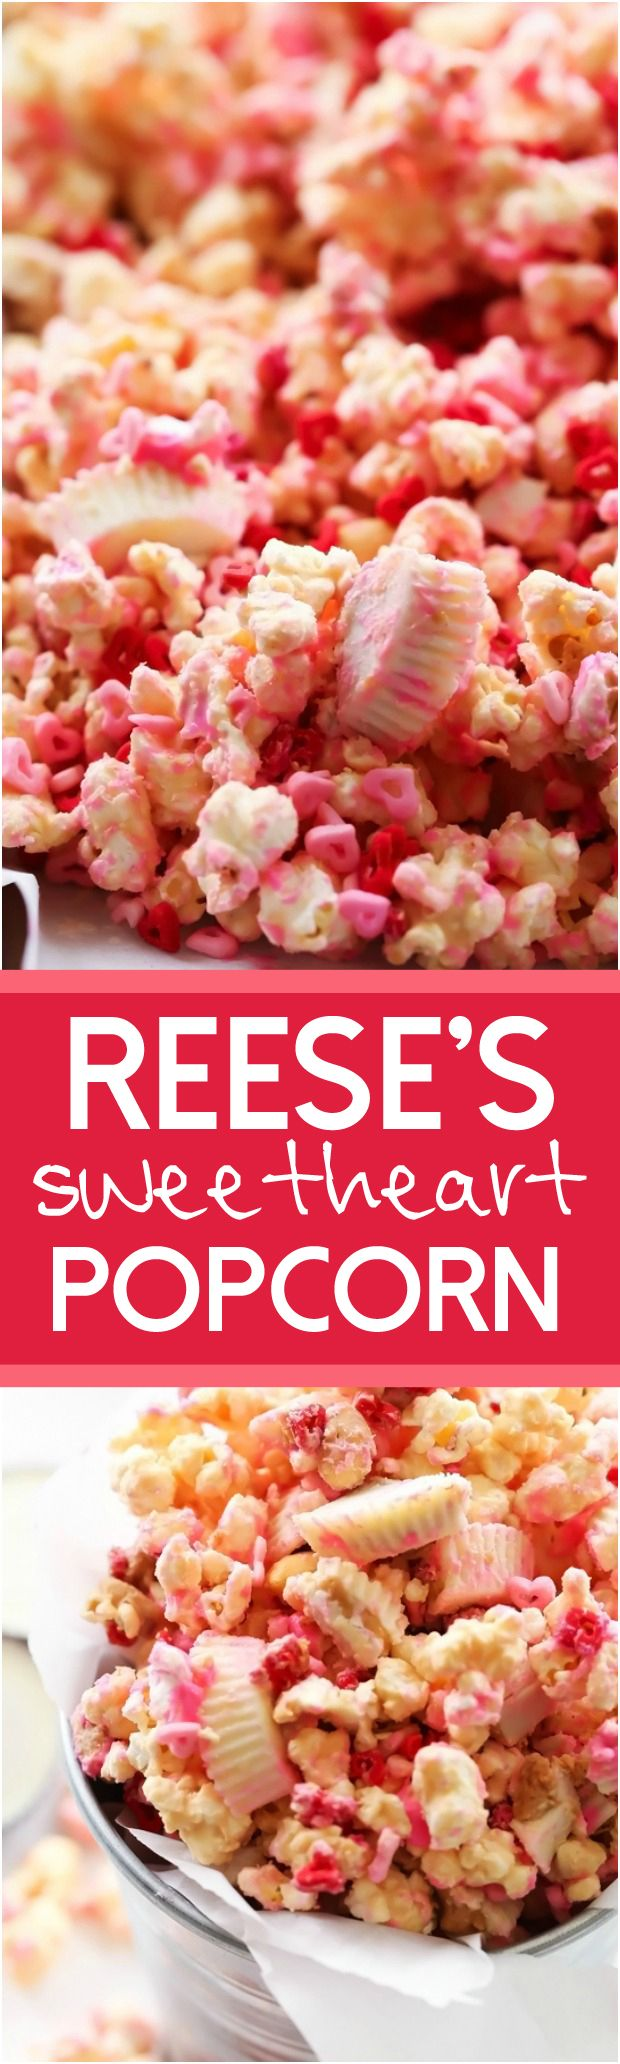 REESE'S Sweetheart Popcorn... A tasty and festive popcorn that is a delicious blend of white chocolate, peanut butter, peanuts and of course REESE's chocolates! #sponsored